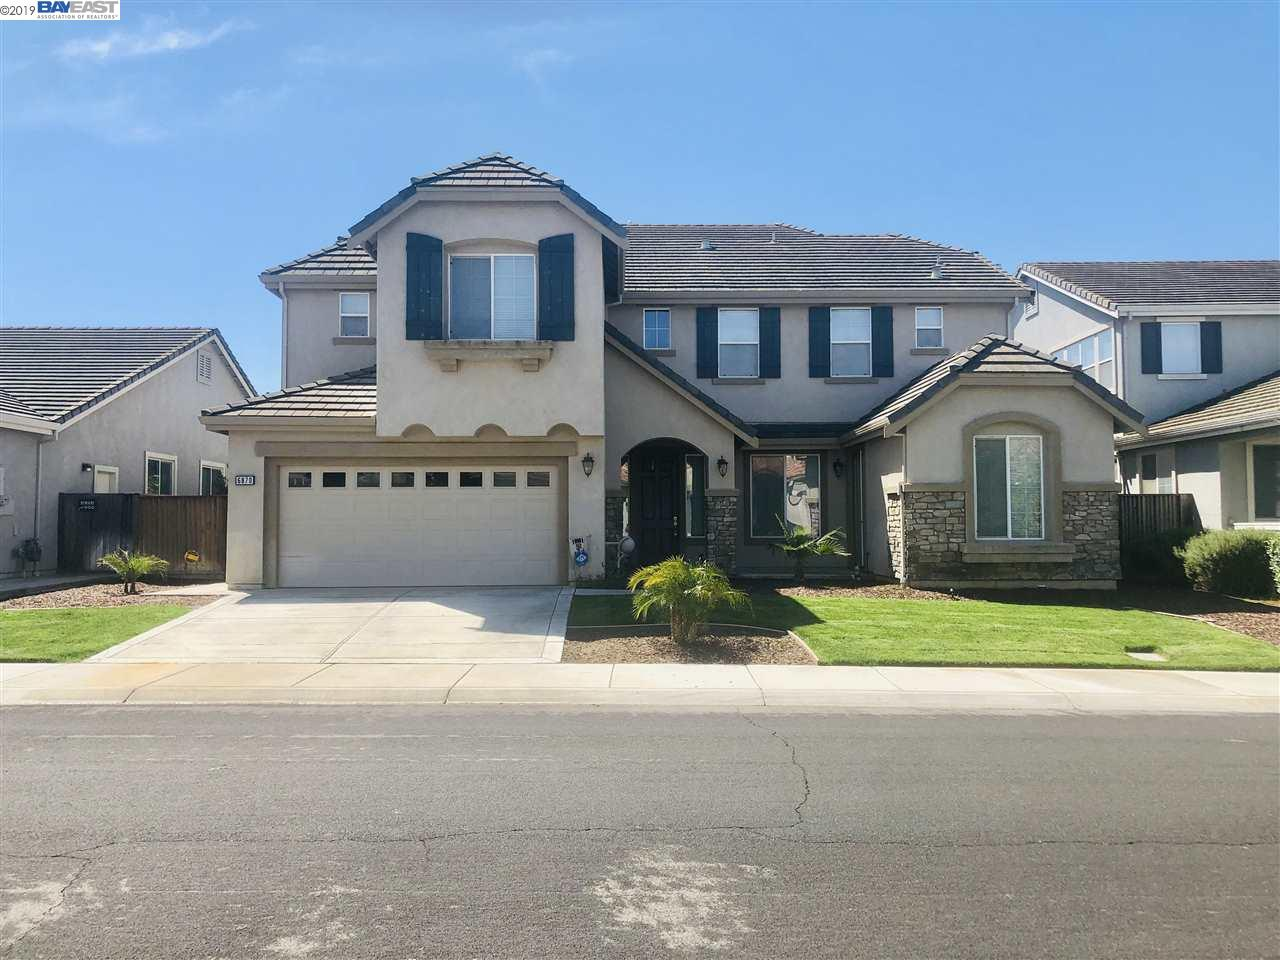 6870 New Melones Cir, DISCOVERY BAY, CA 94505